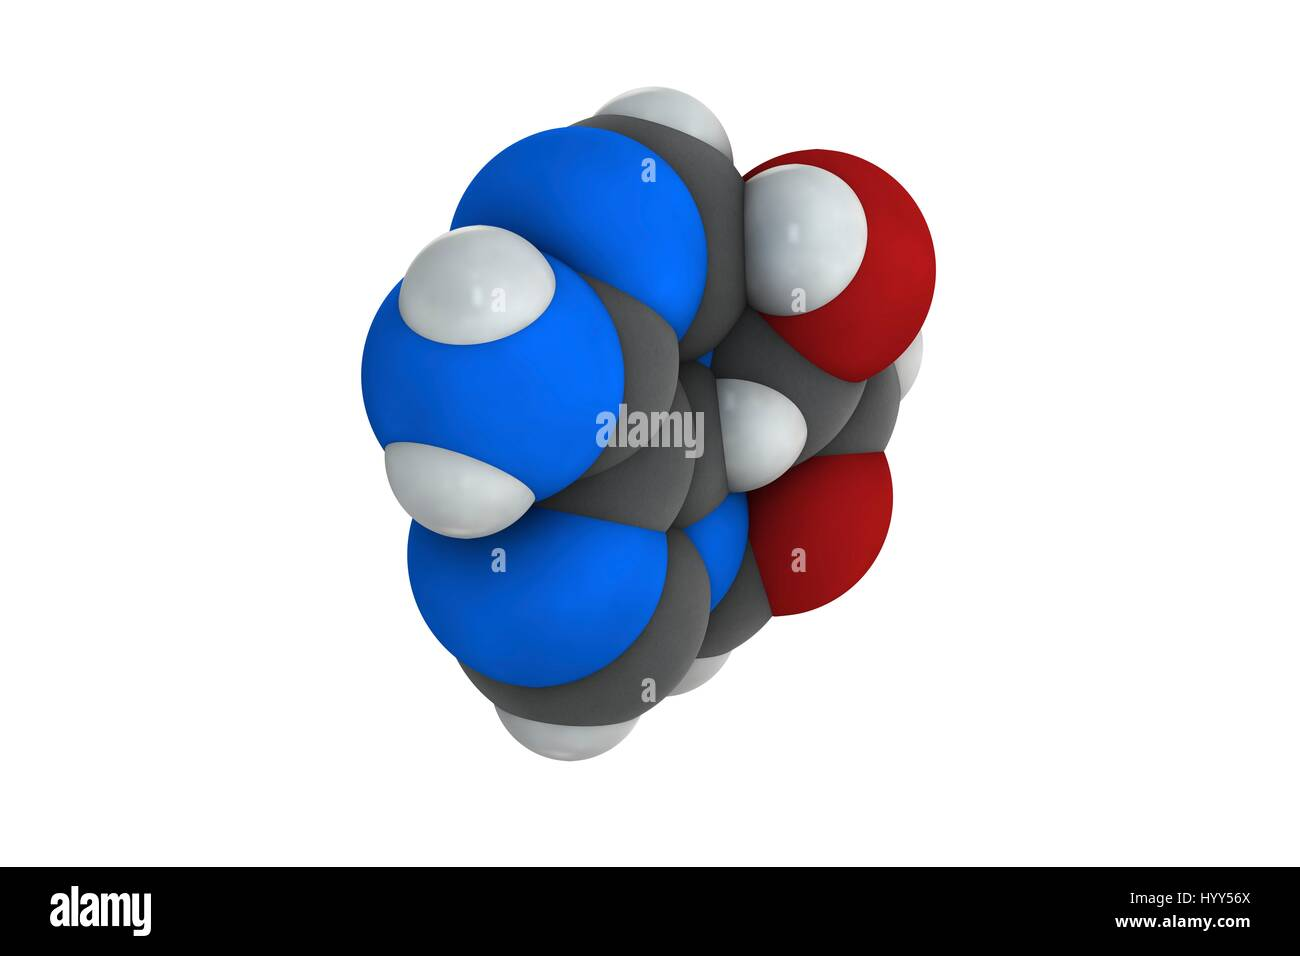 Adenosine (Ado) purine nucleoside molecule. Important component of ATP, ADP, cAMP and RNA. Also used as drug. Chemical - Stock Image